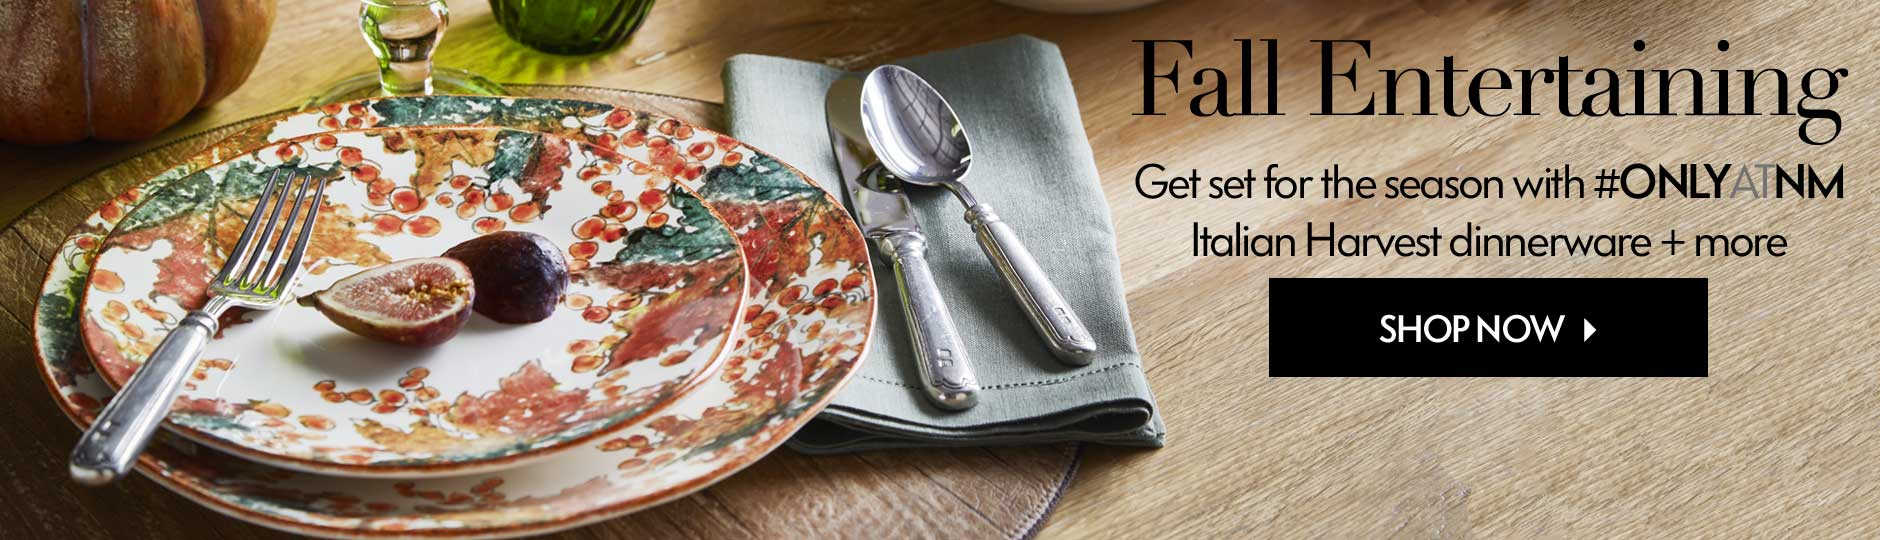 Fall Entertaining: Shop Now